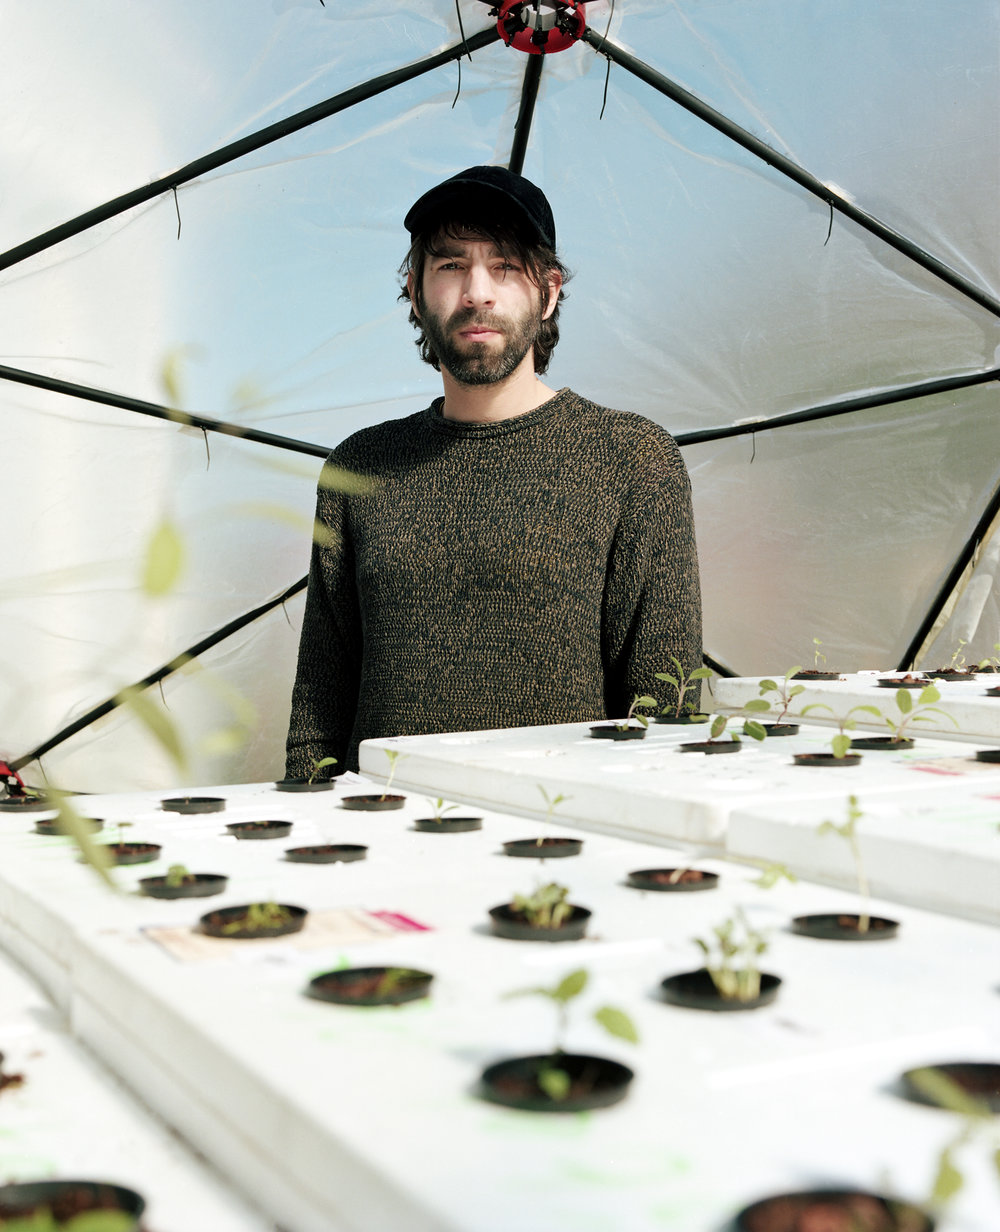 Phillipe in the greenhouse of The Scent Bank. He distills different foraged items to create a portrait of the fjord through fragrance.